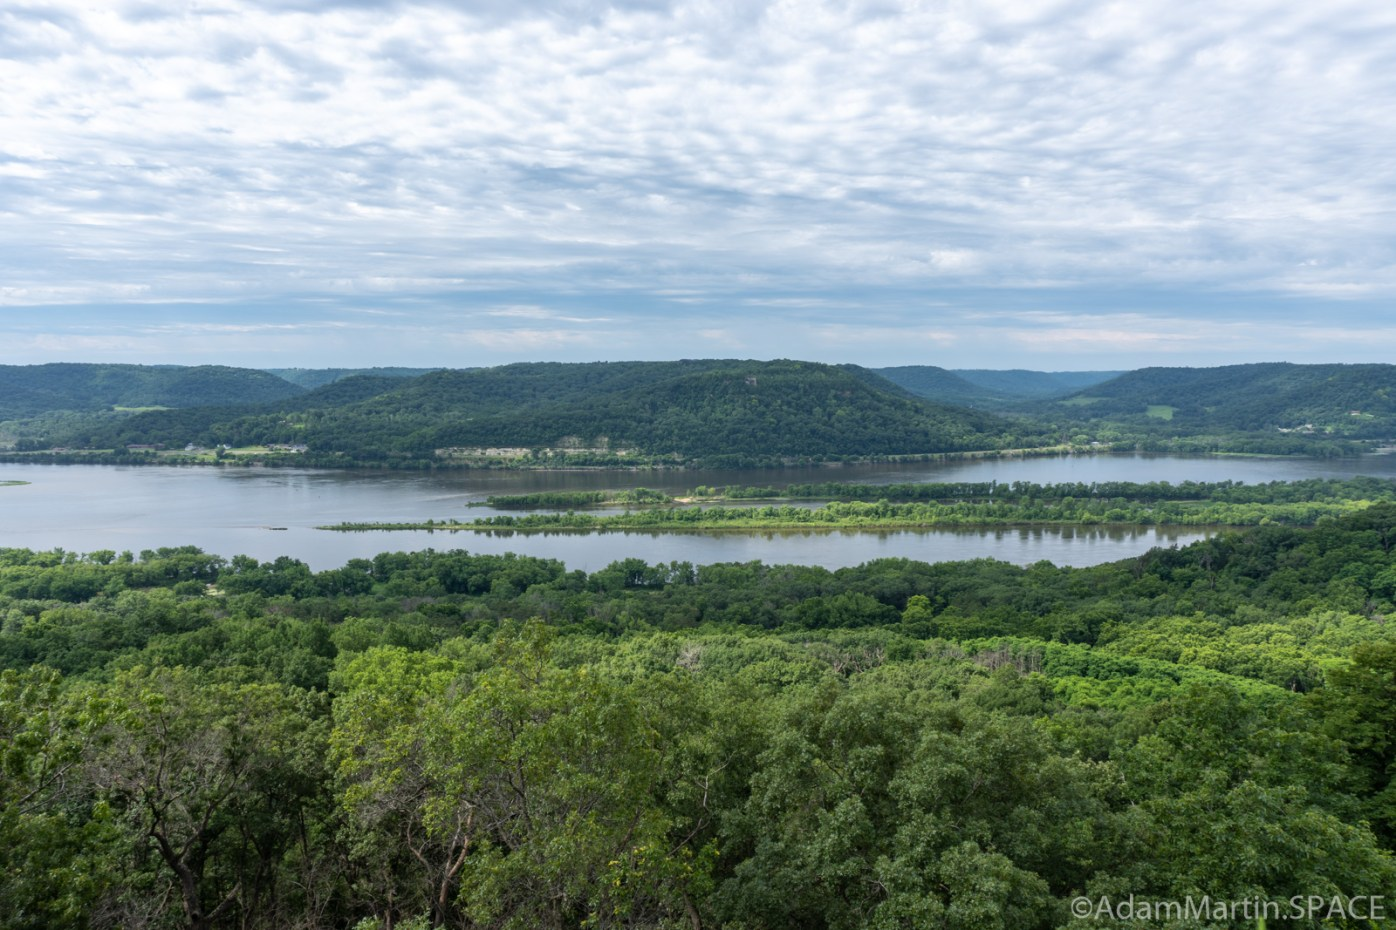 Perrot State Park - View across Trempeauleau Bay from atop Perrot Ridge